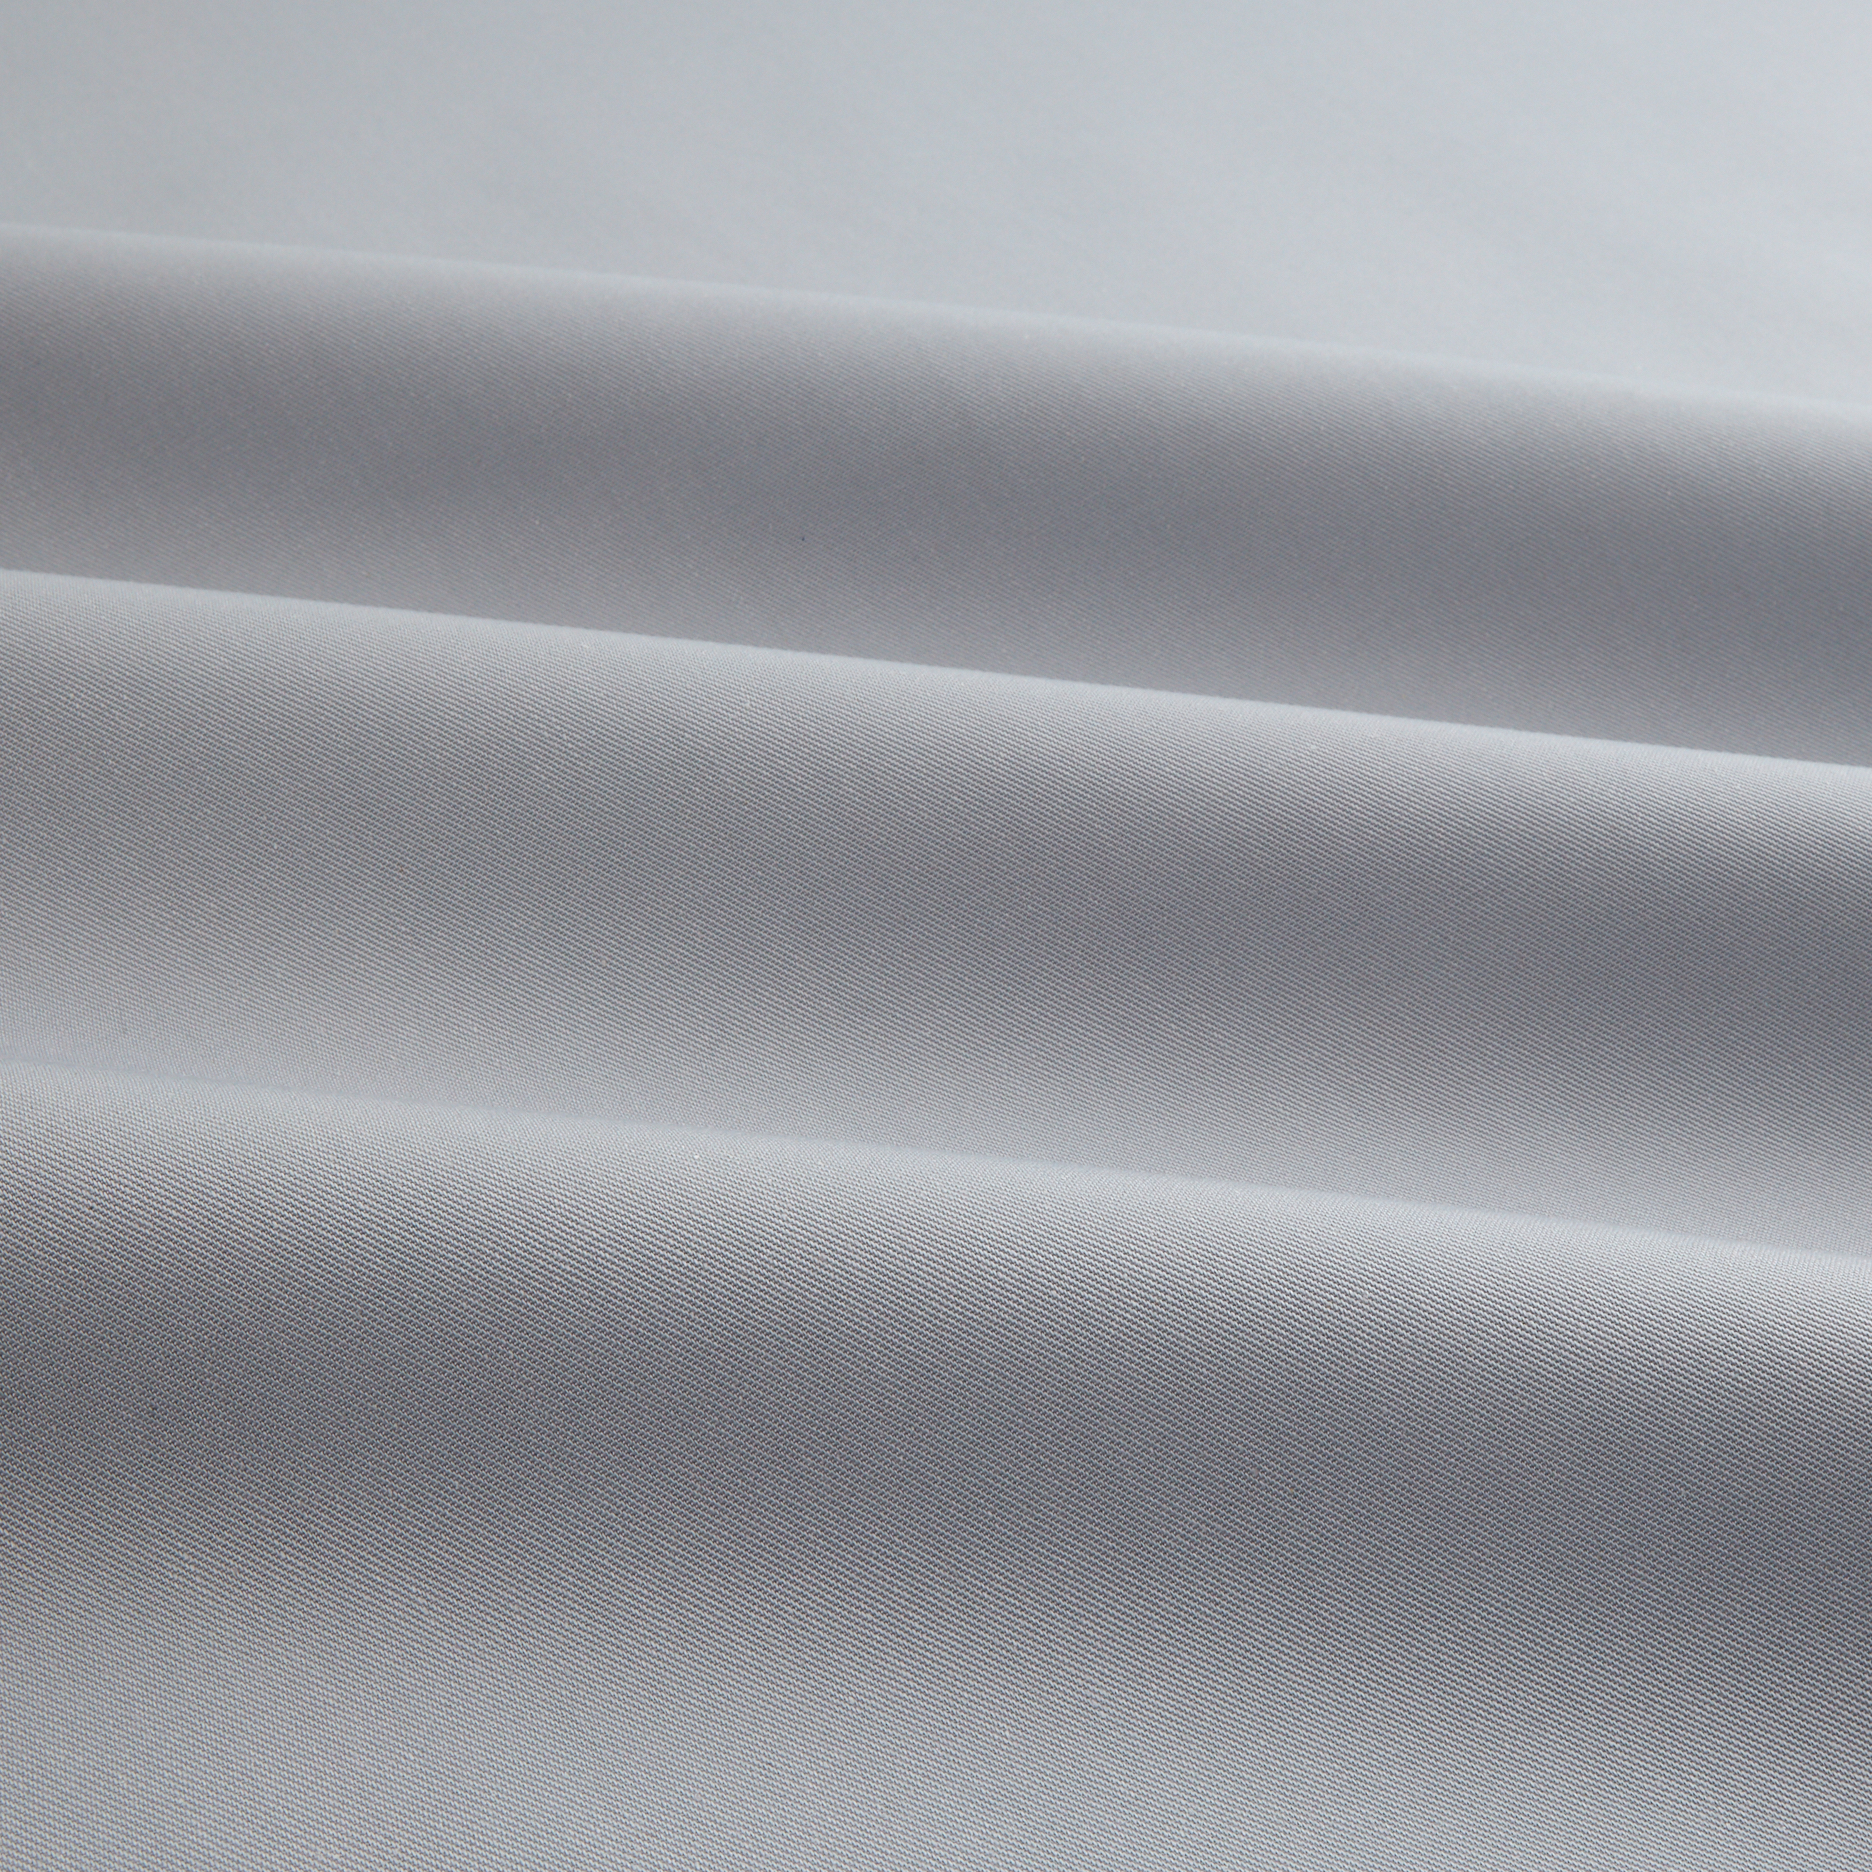 Organic Eco Twill Silver Fabric by Carr in USA